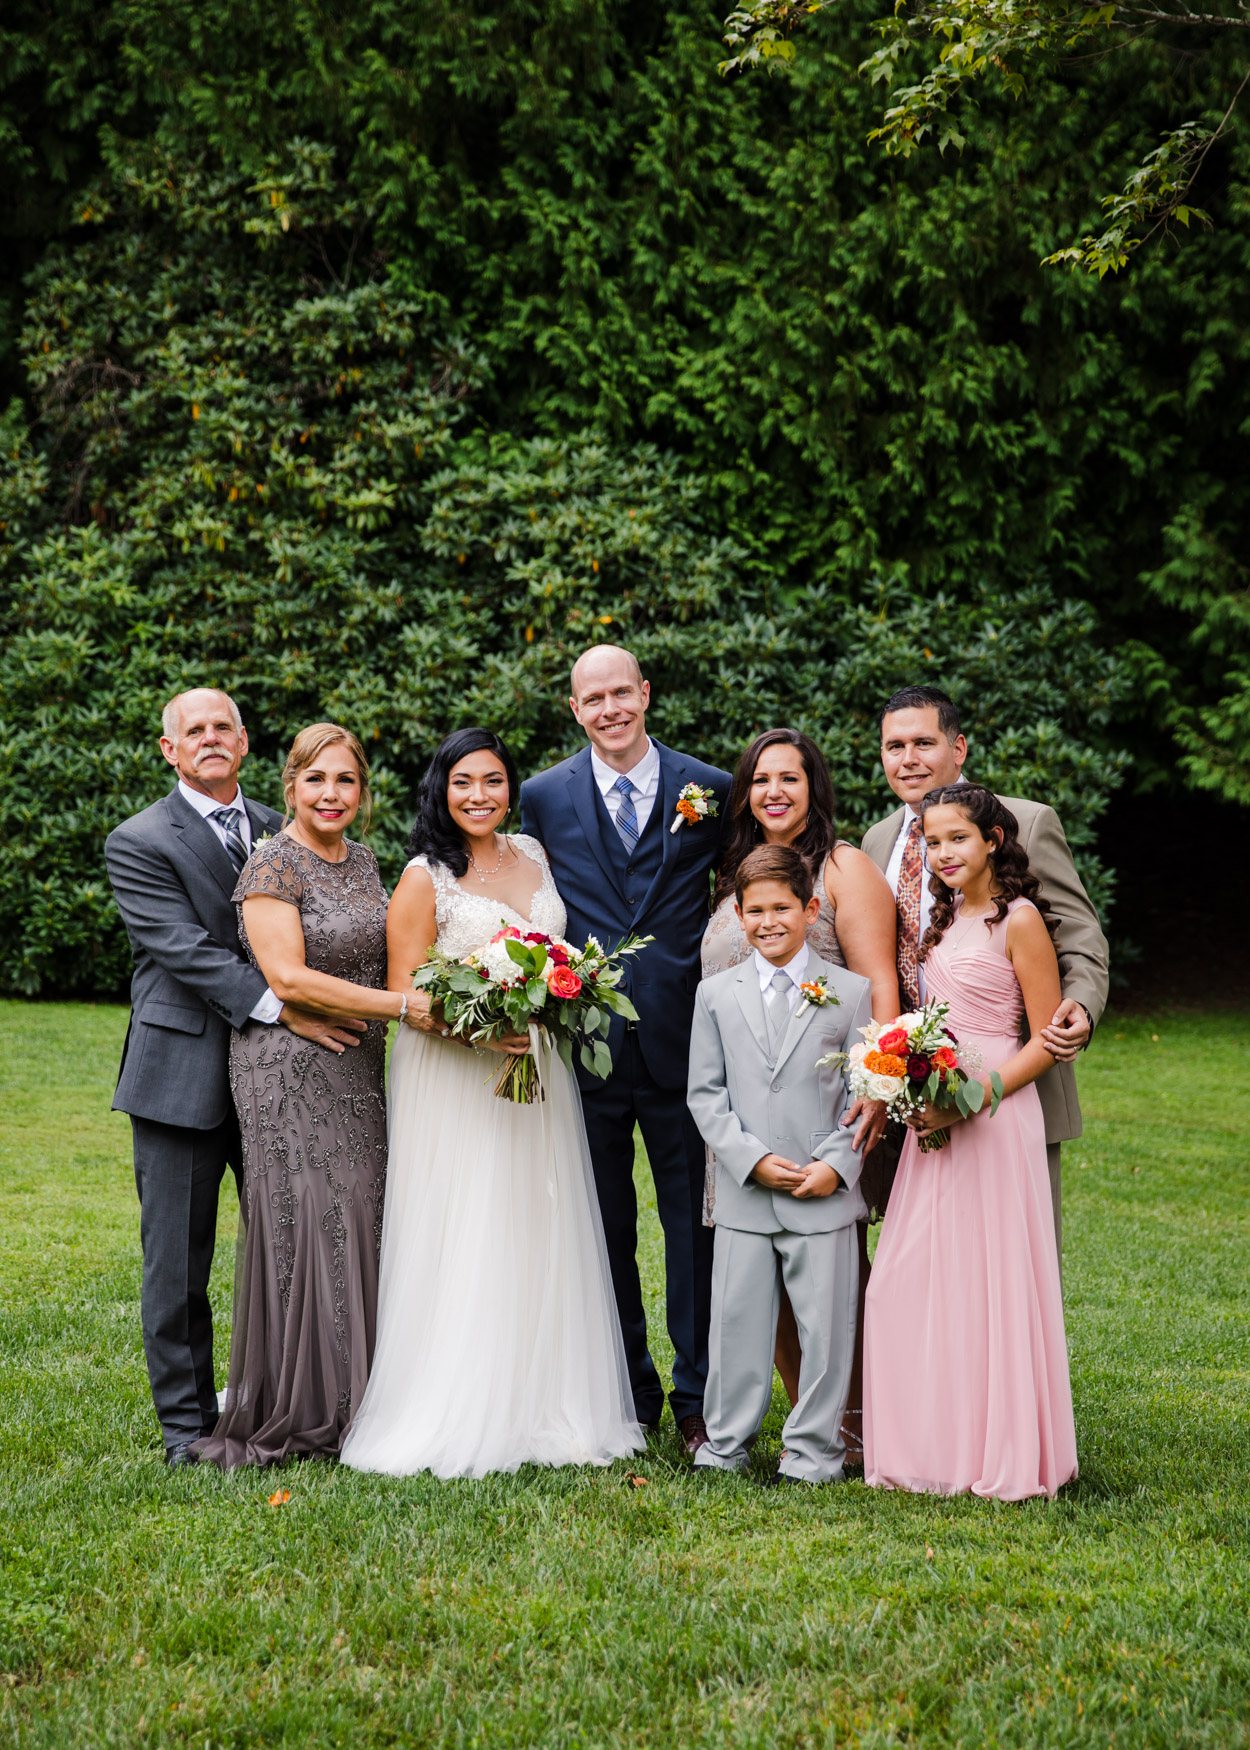 Wedding Family Portrait Waynesville NC Wedding Photography Inn at Tranquility Farm